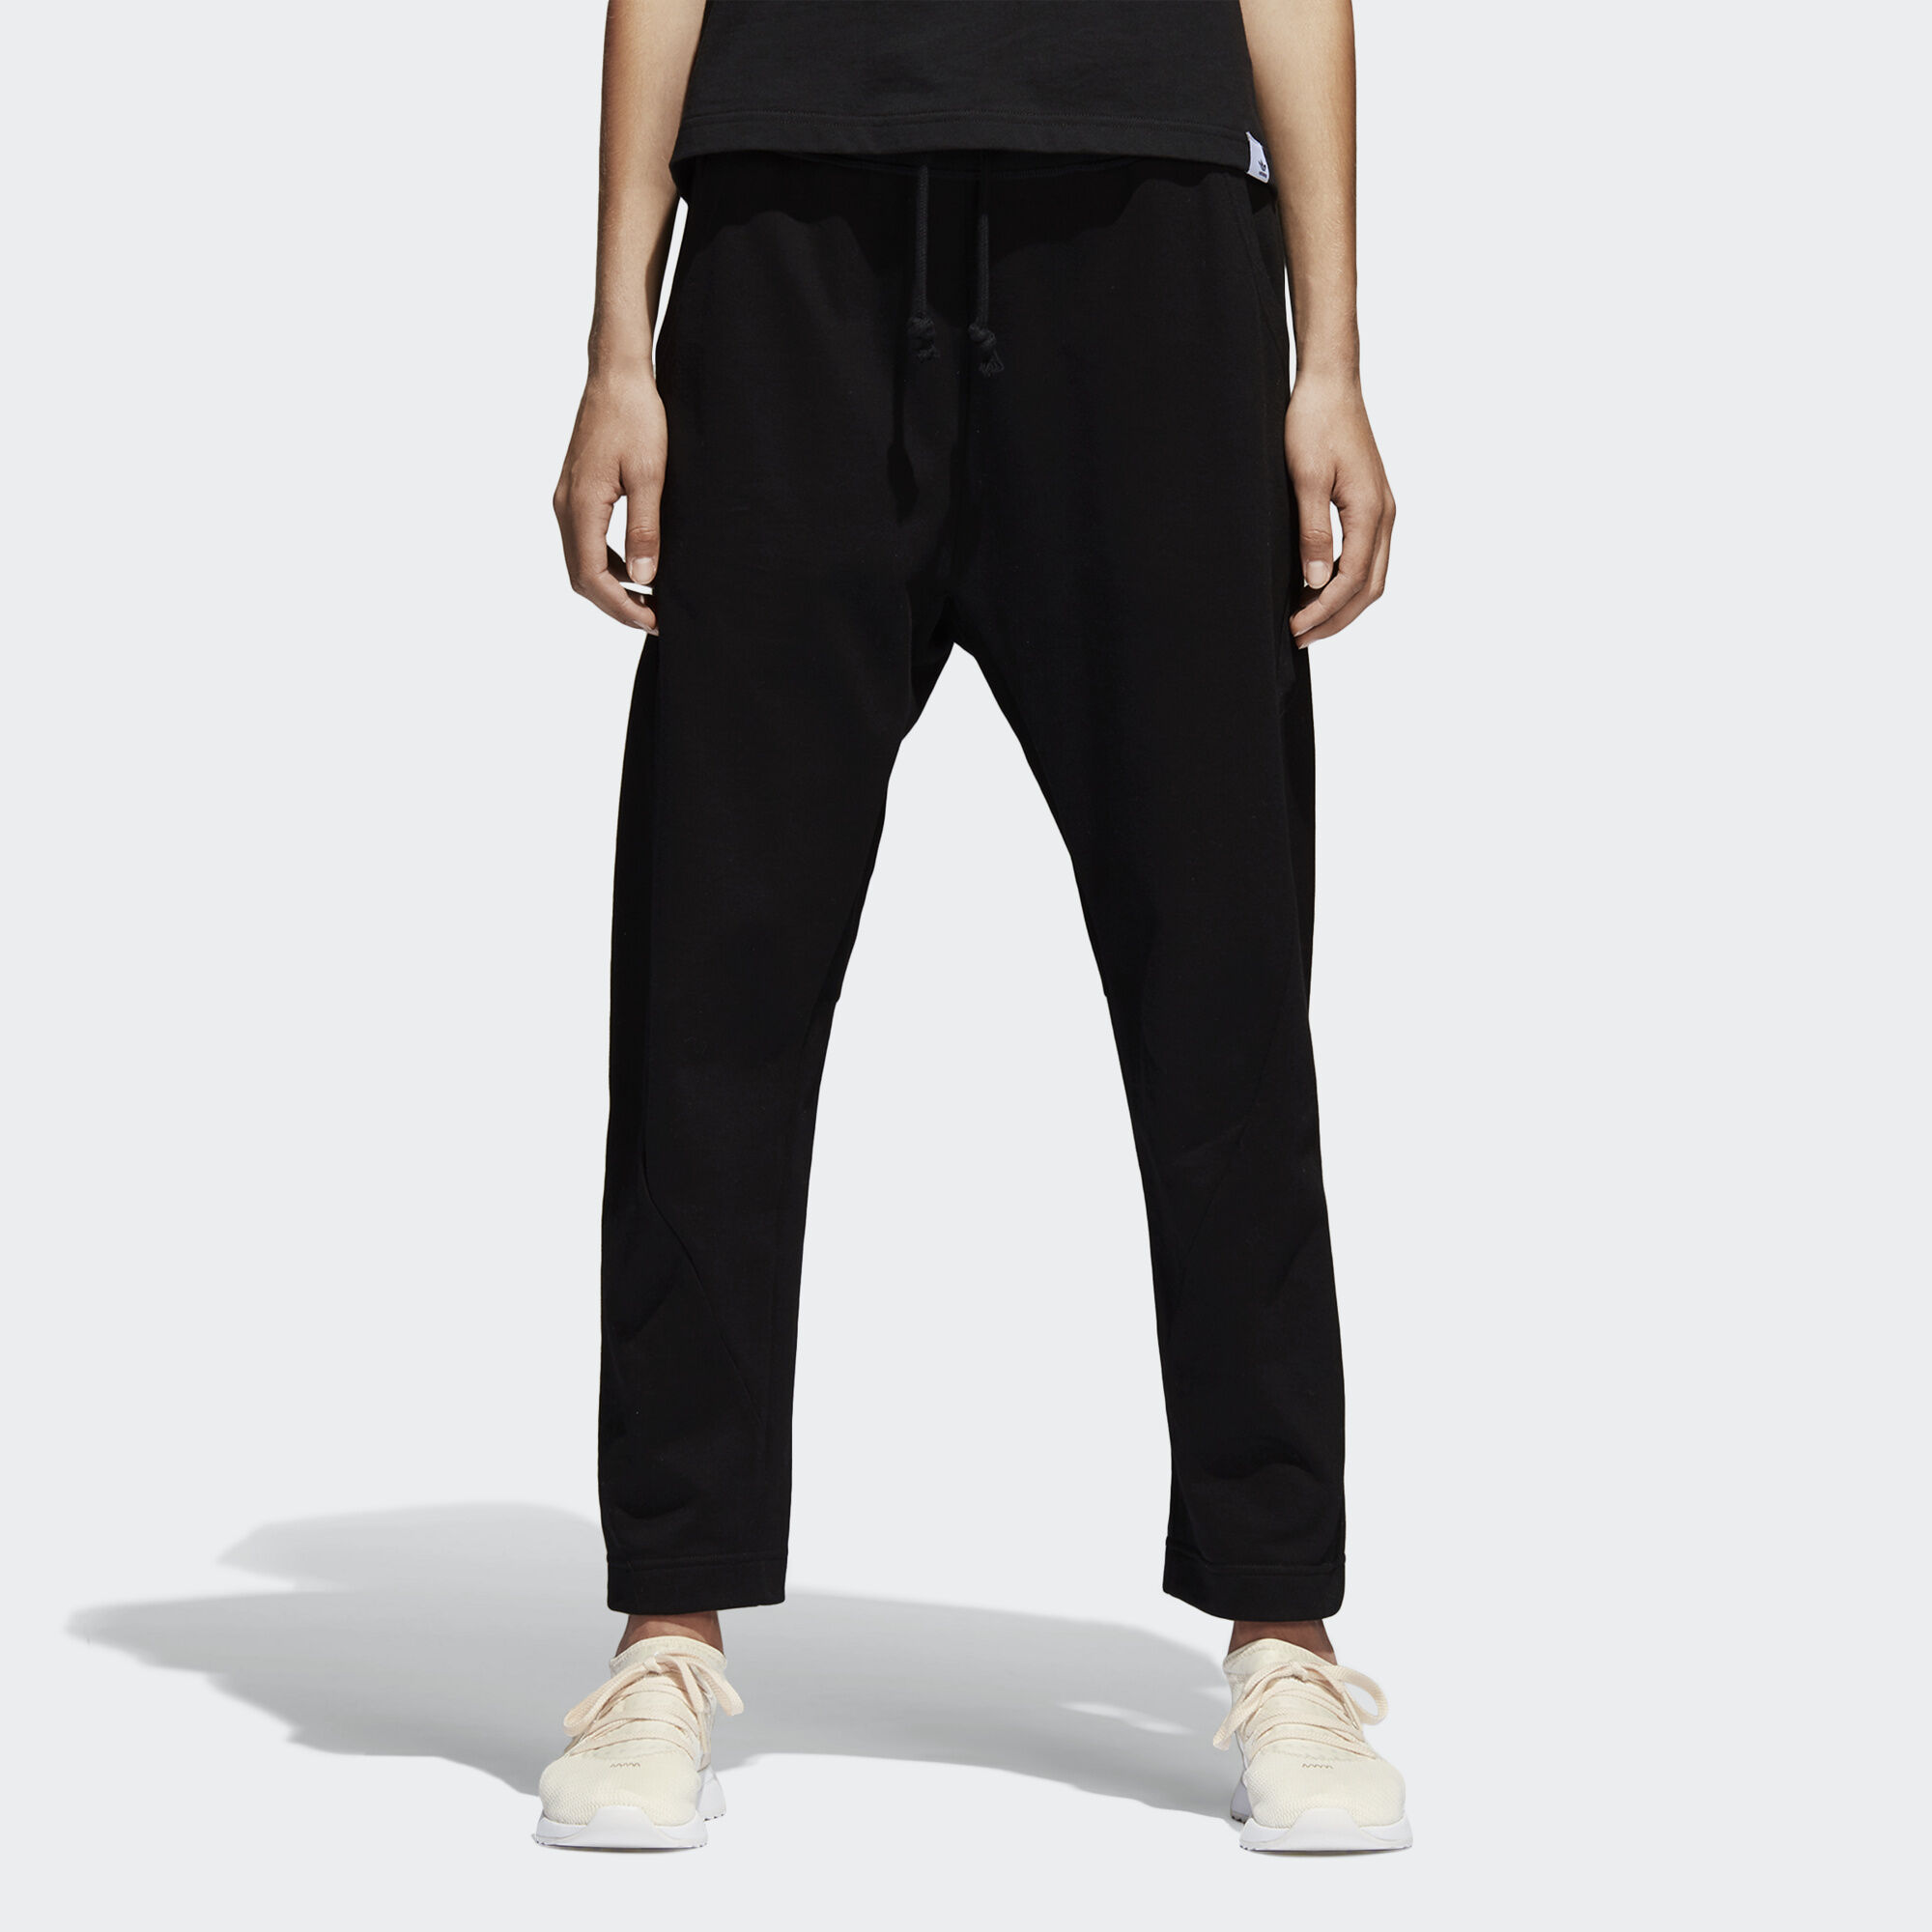 Popular Adidas SST Track Pants AY7891  Compare Prices On Scroogecouk